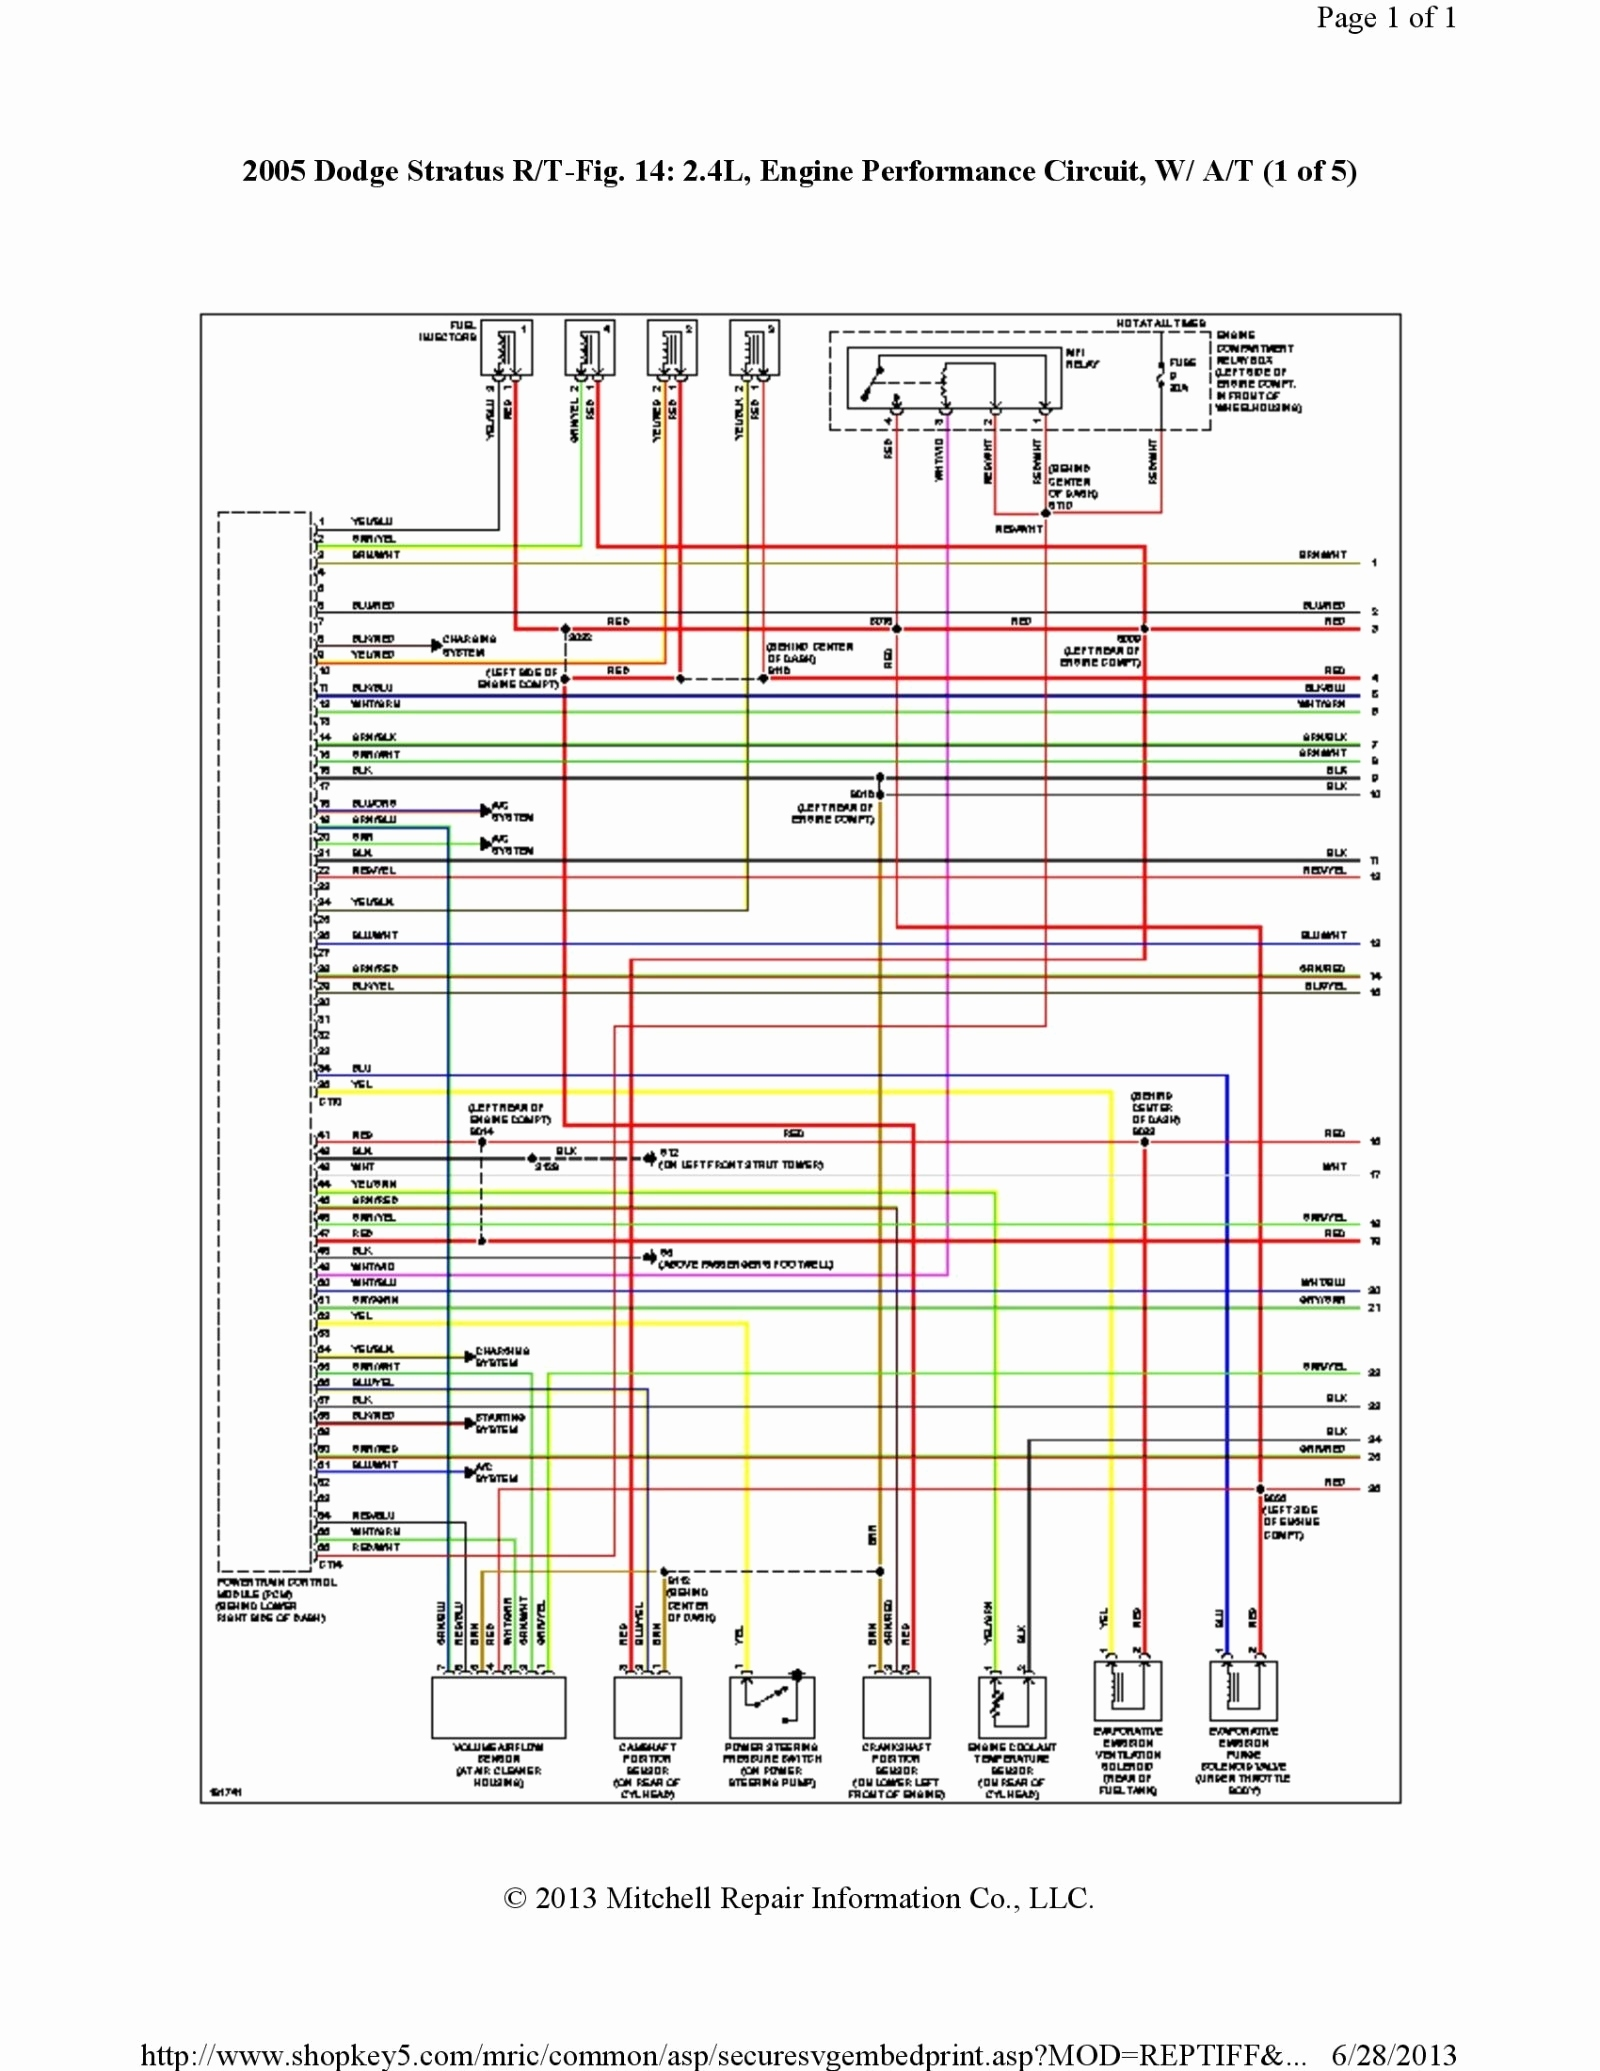 2004 dodge ram 1500 radio wiring diagram Collection-2008 Chevy 1500 Radio Wiring Diagram Wiring Diagram Database Best Fascinating 2004 Dodge Ram 2-c